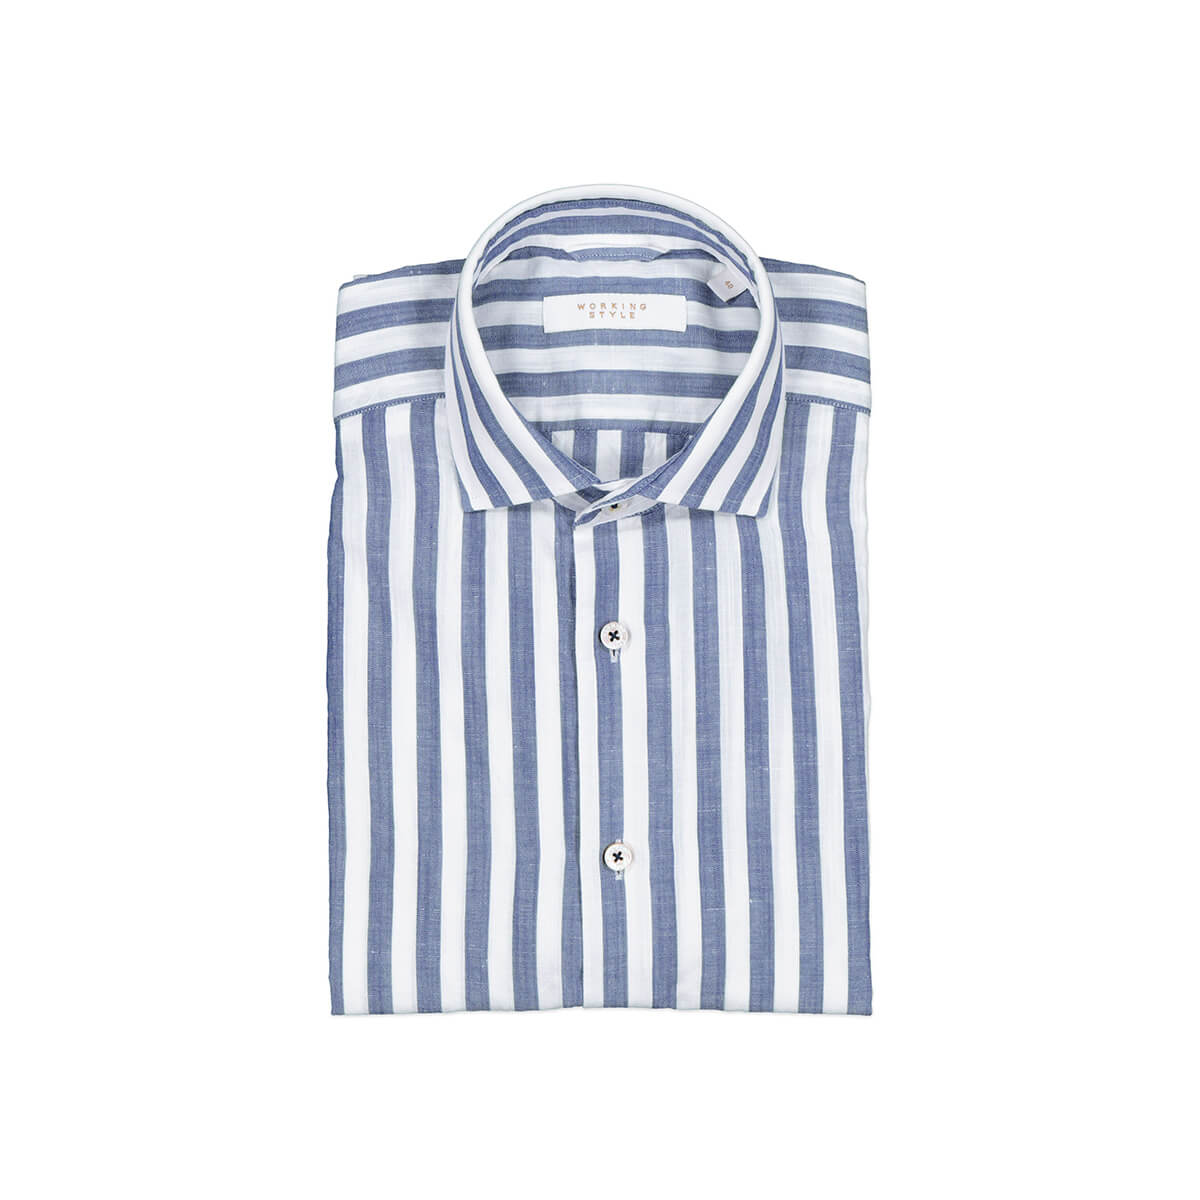 Blue striped shirt from Working Style Mens